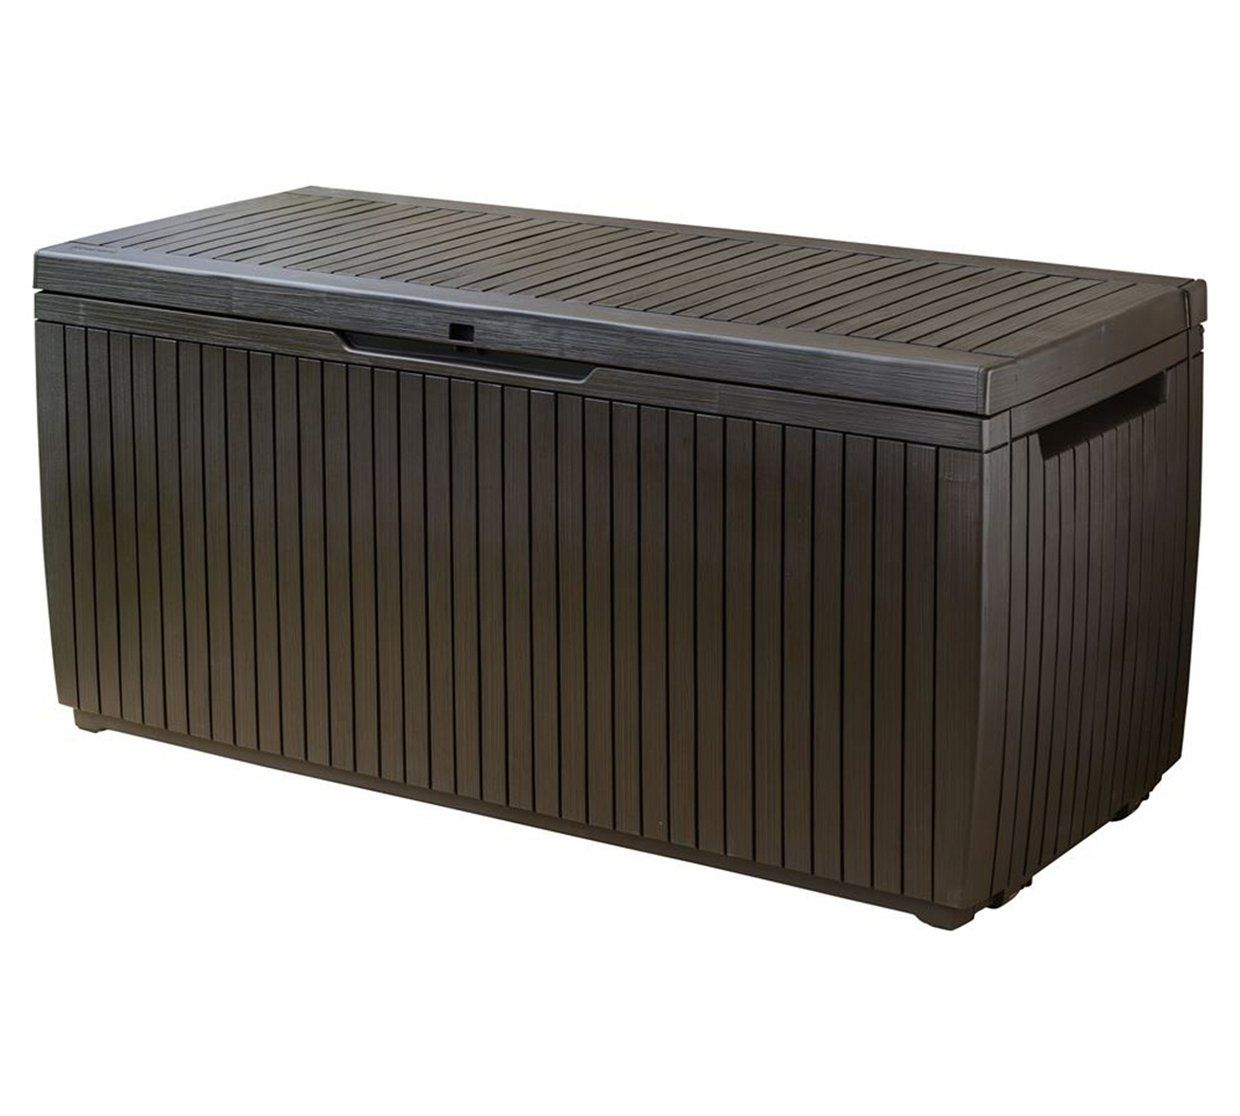 Buy Keter Springwood 305L Garden Storage Box Brown